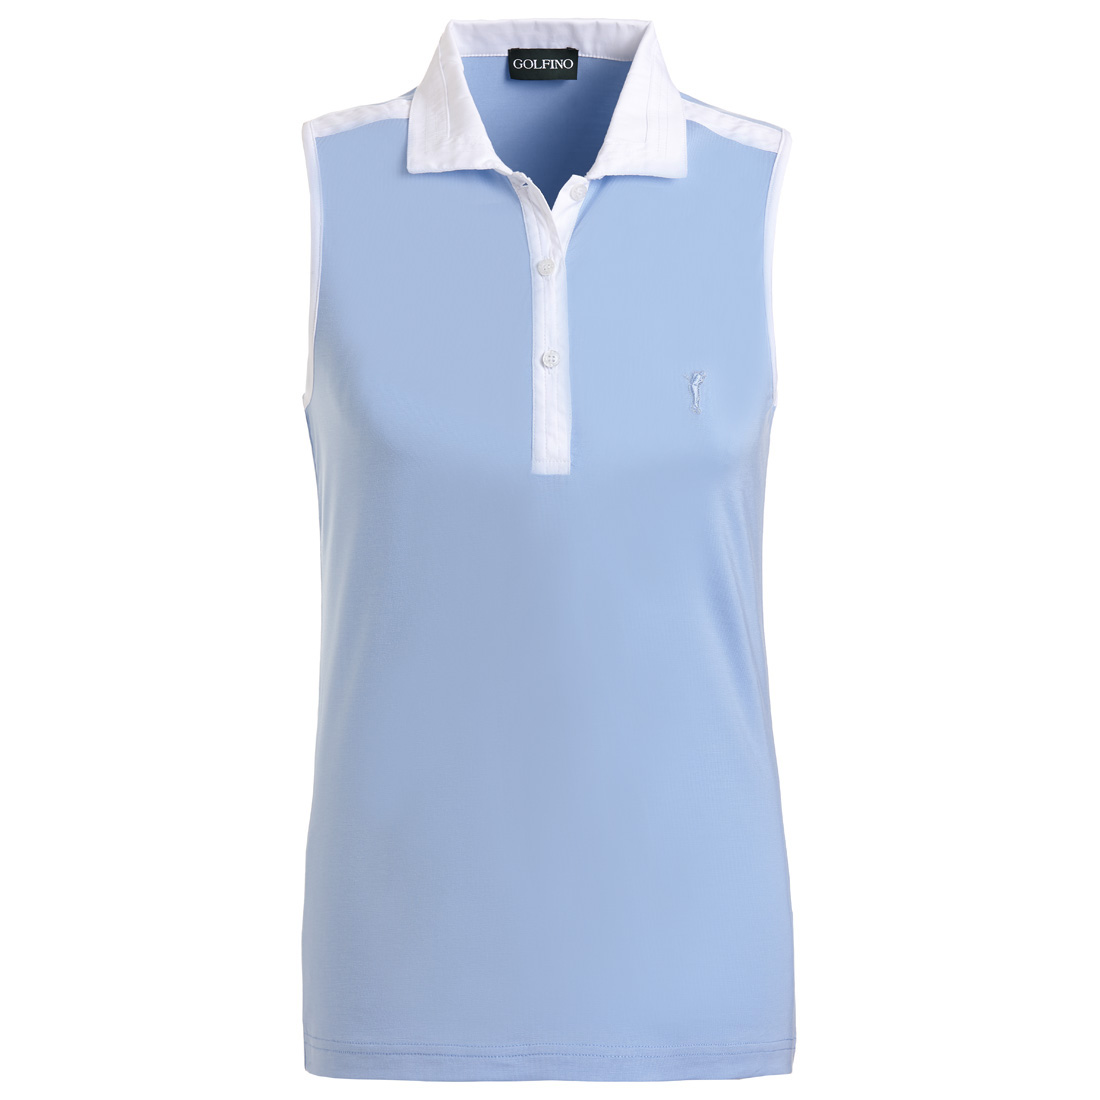 Damen Funktions-Golfpolo mit Moisture-Management aus softem Stretch